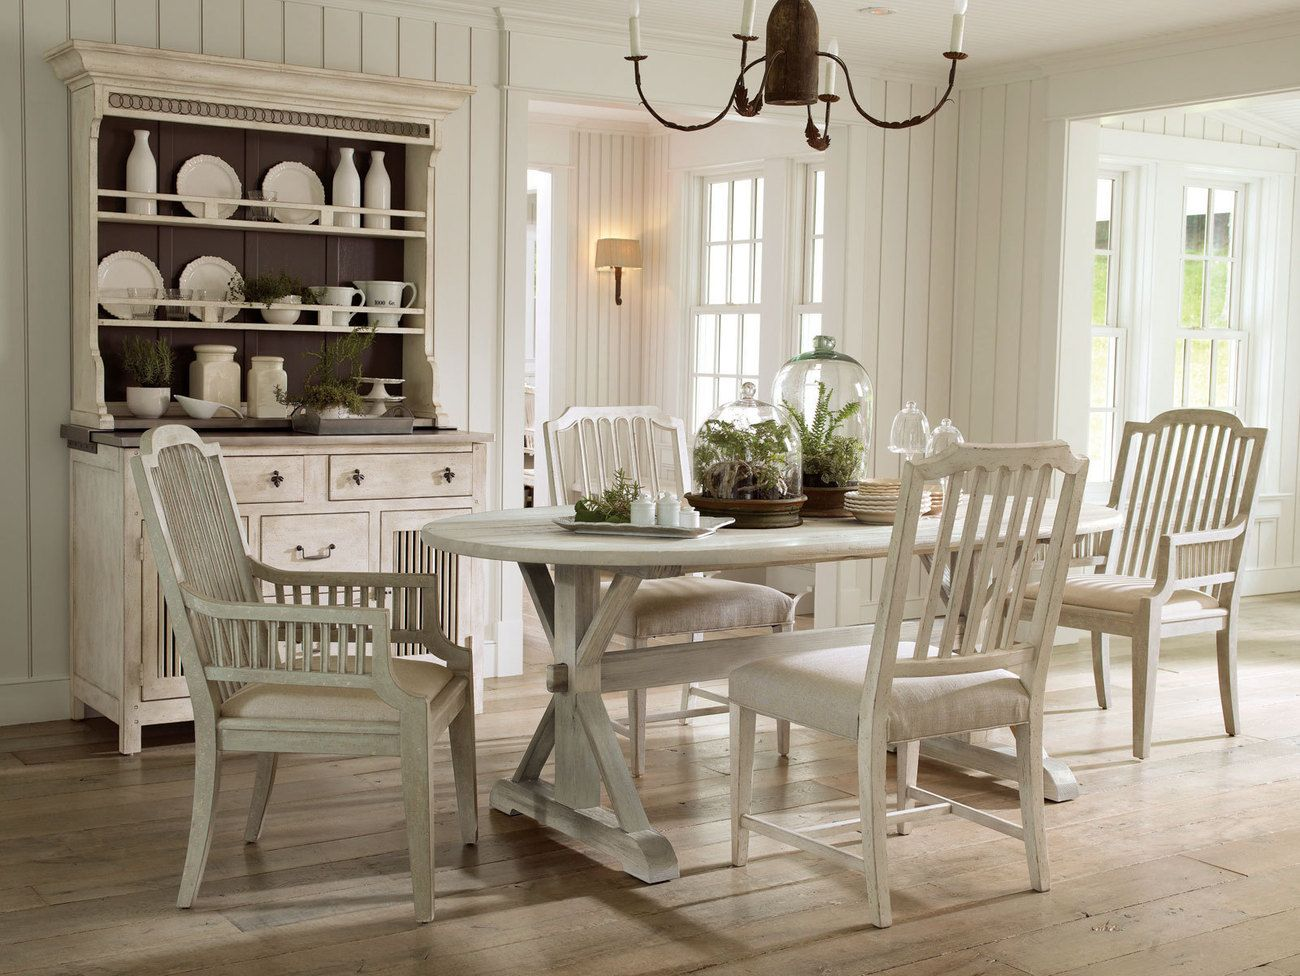 country dining room sets traditional cottage dining room ideas with elegant rectangle wallpaper. Black Bedroom Furniture Sets. Home Design Ideas